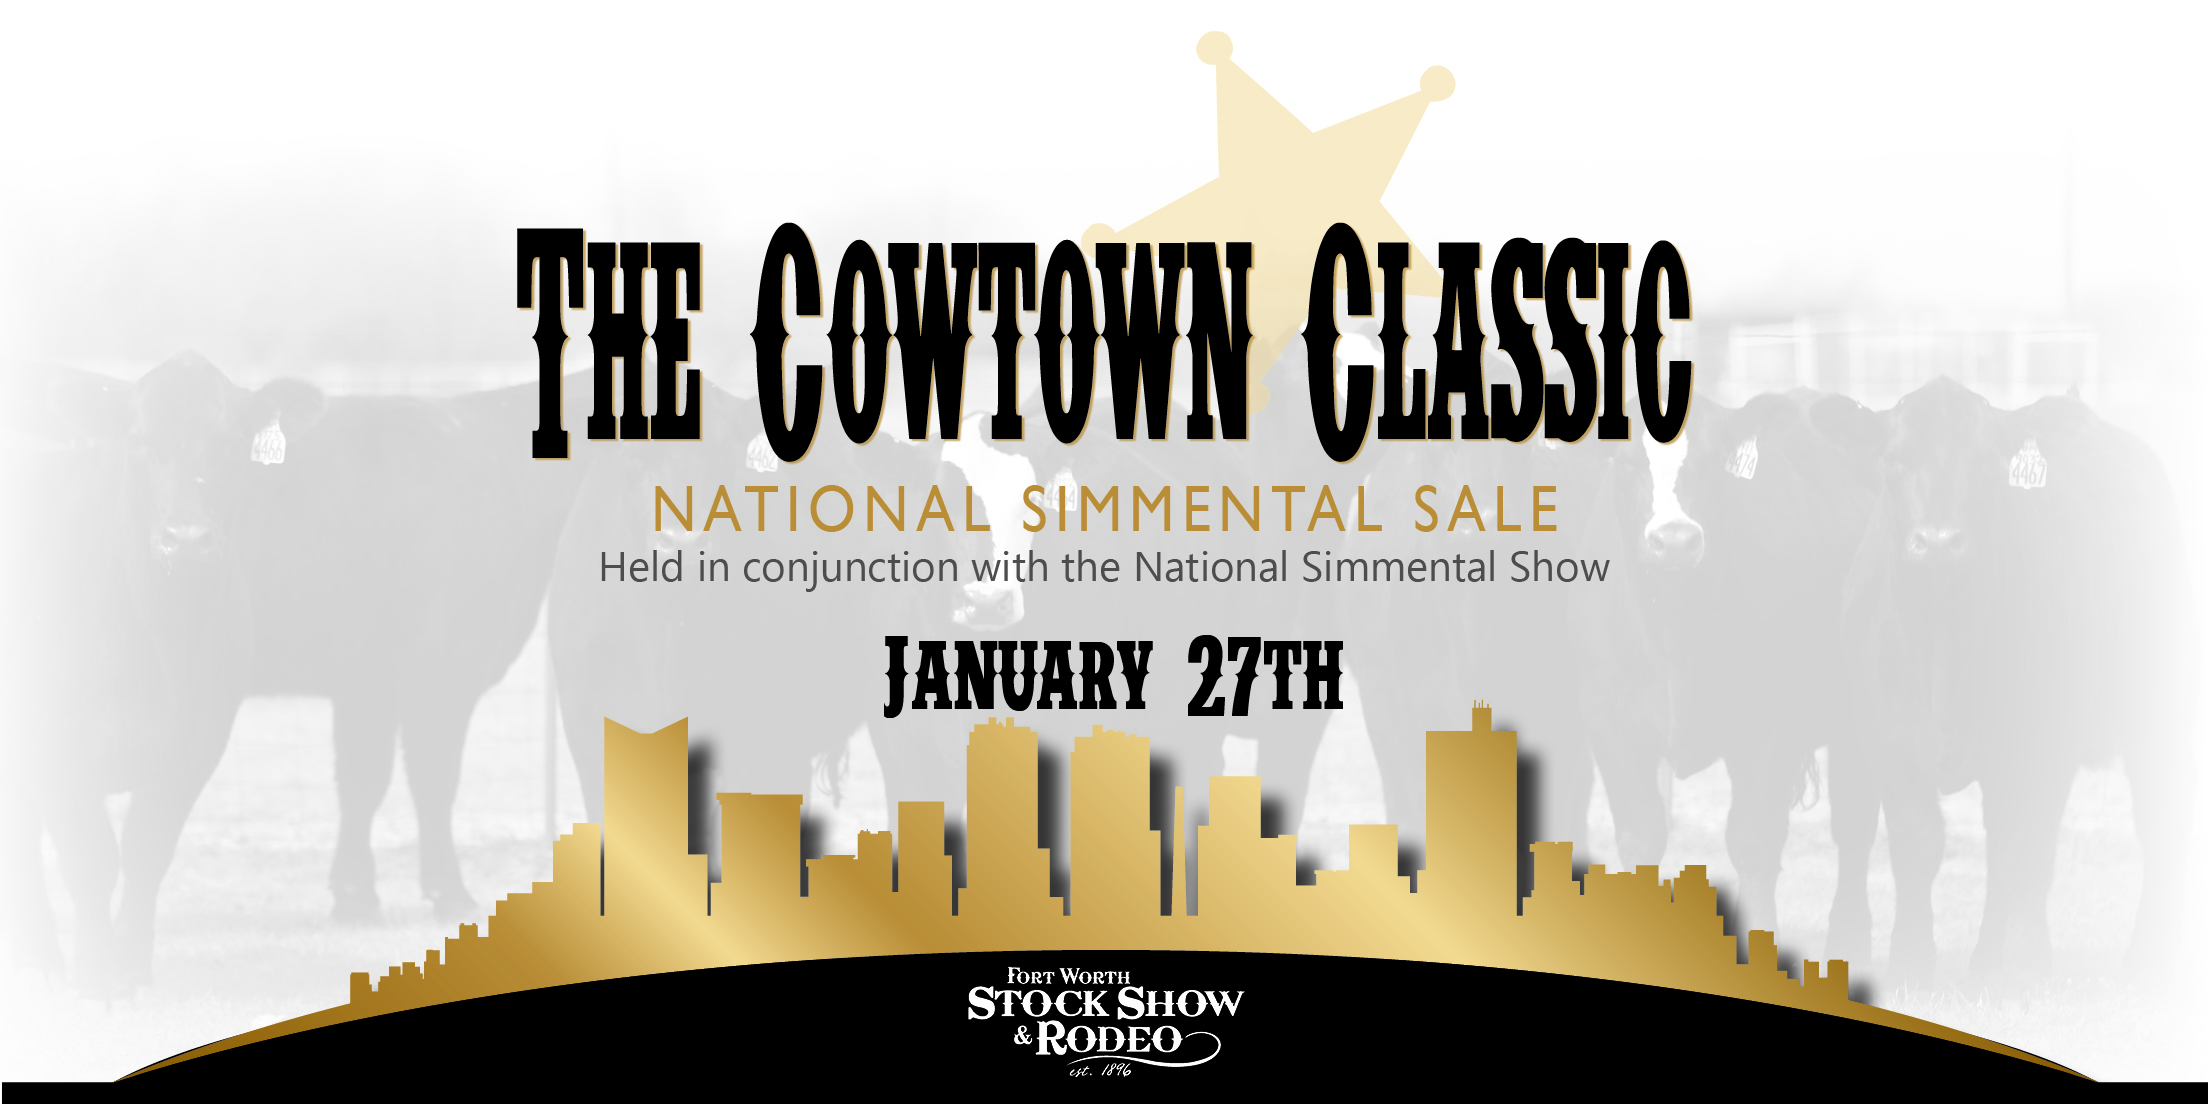 cowtown classic feature image